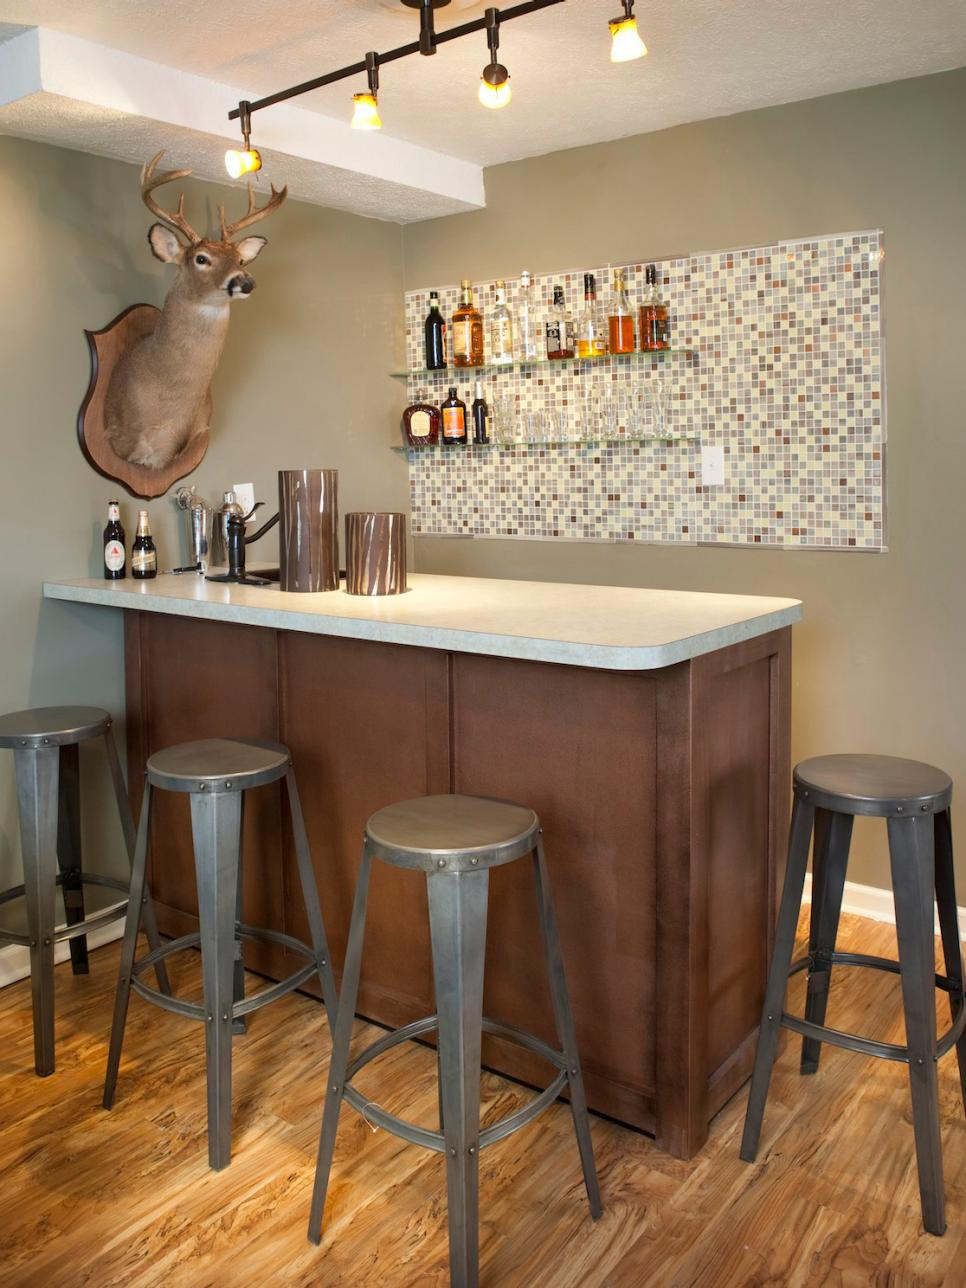 Home Bar Ideas 89 Design Options Hgtv - Bar Ideen